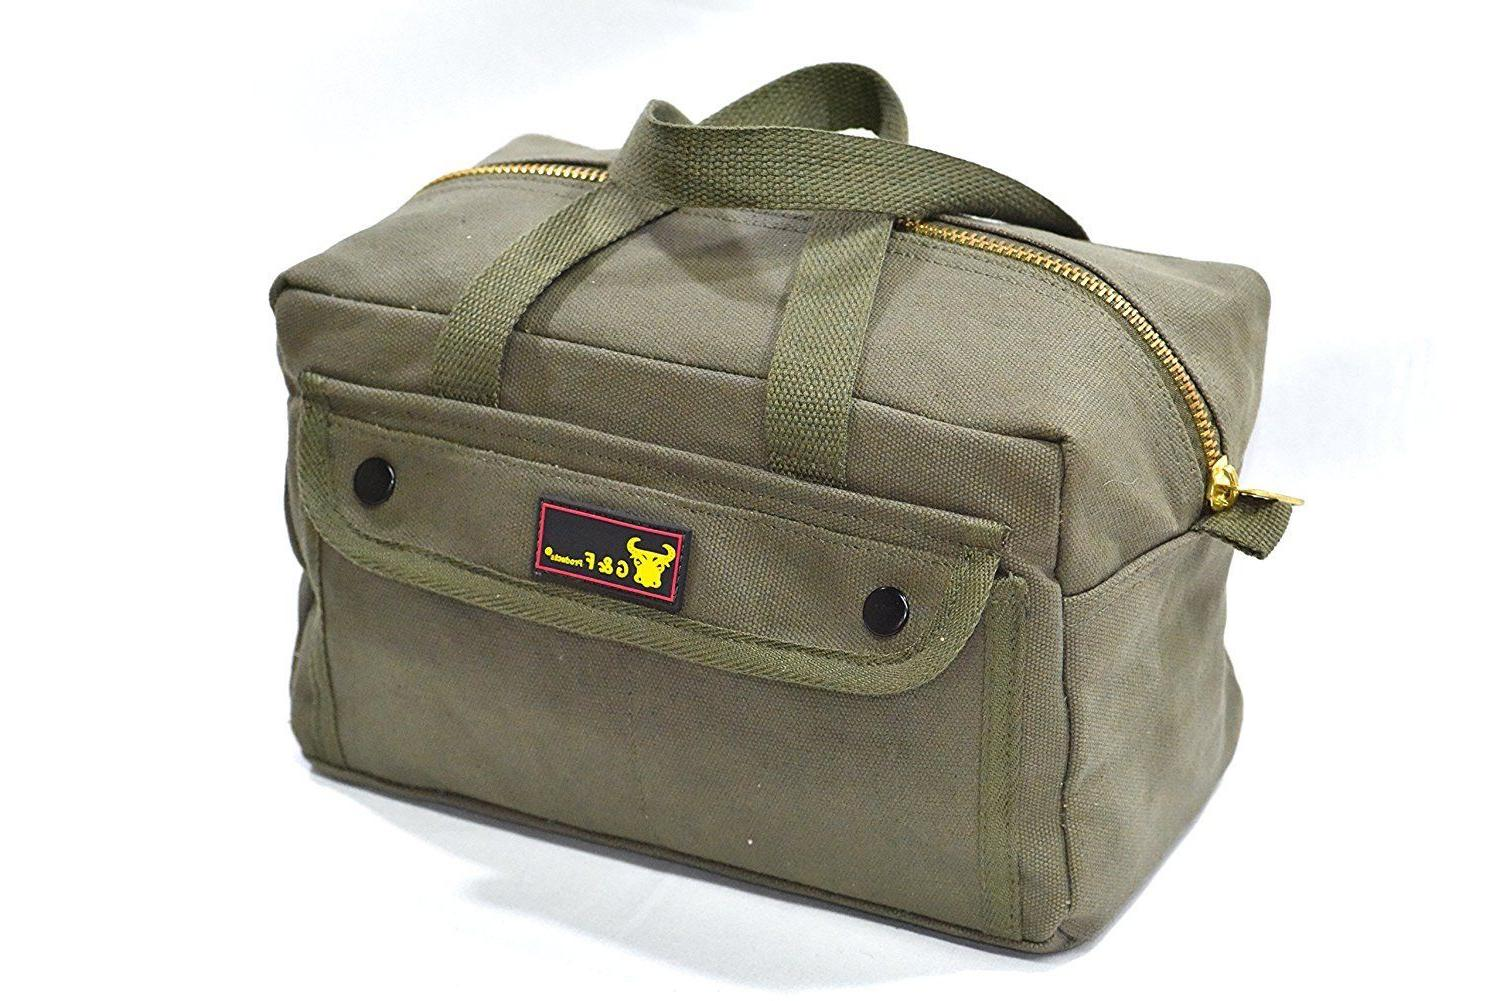 Government Issued Heavy Tool with Brass zipper side